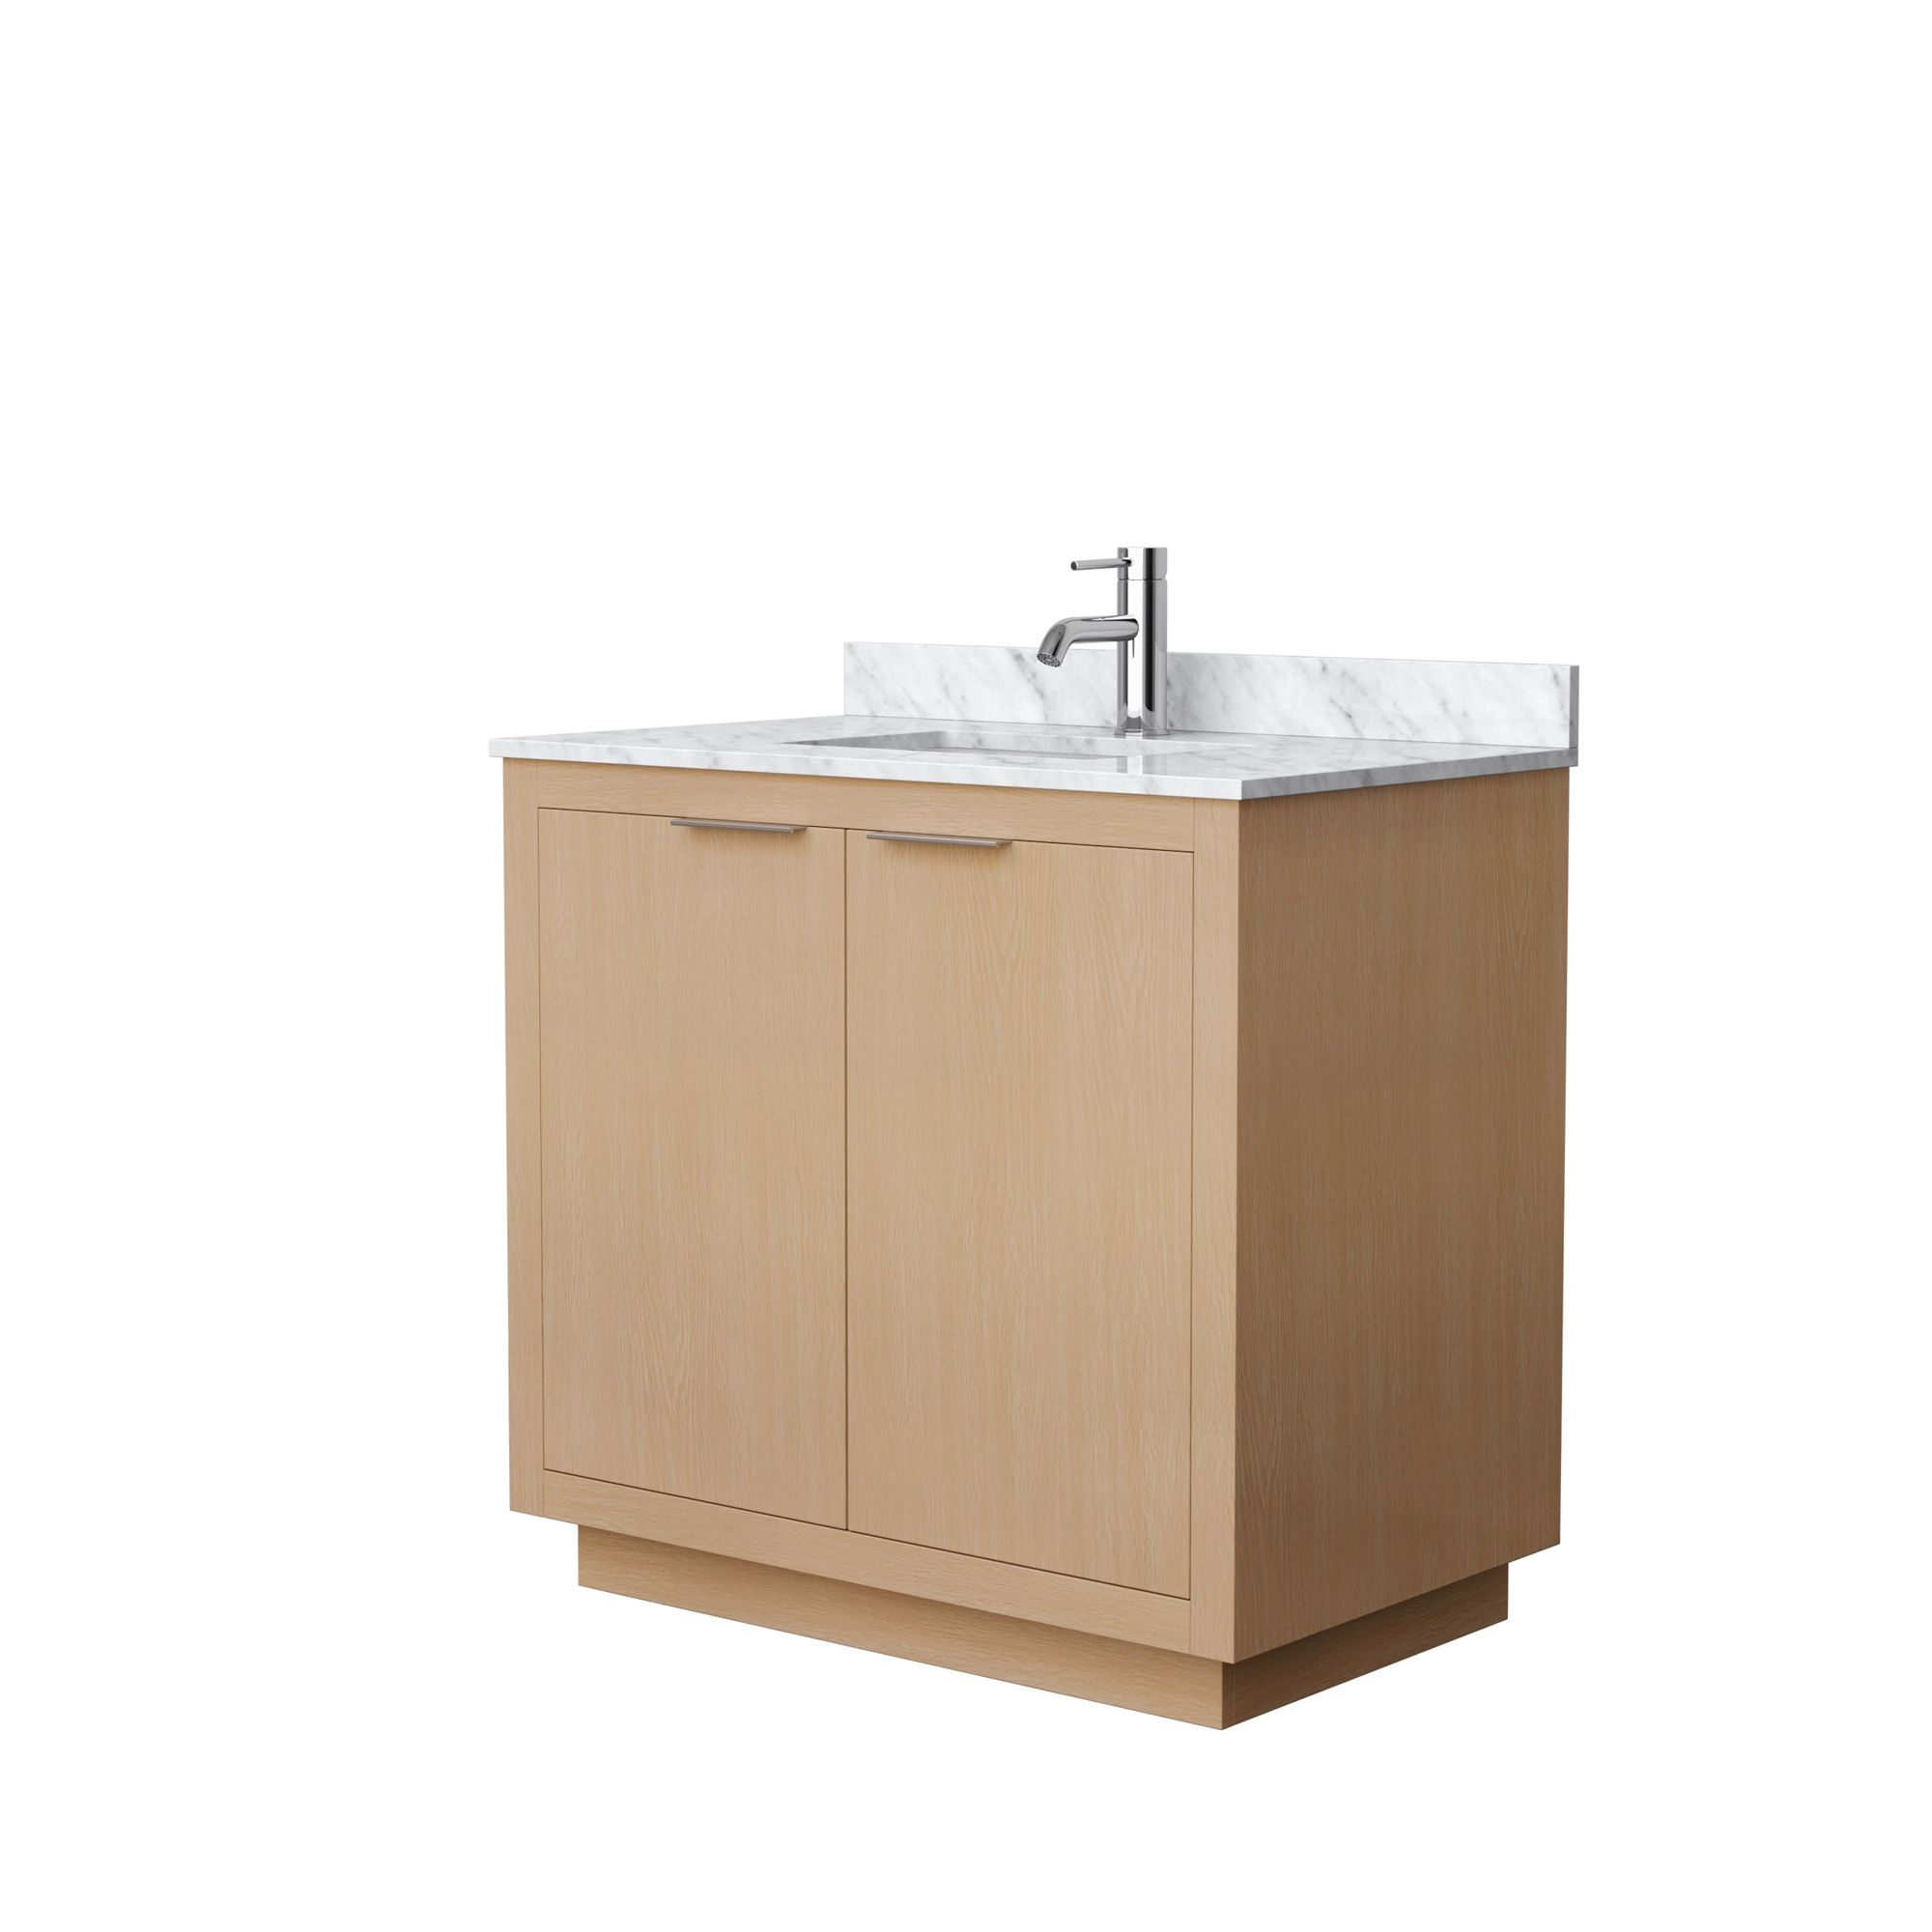 """36"""" Single Bathroom Vanity in Light Straw with Countertop and Hardware Options"""